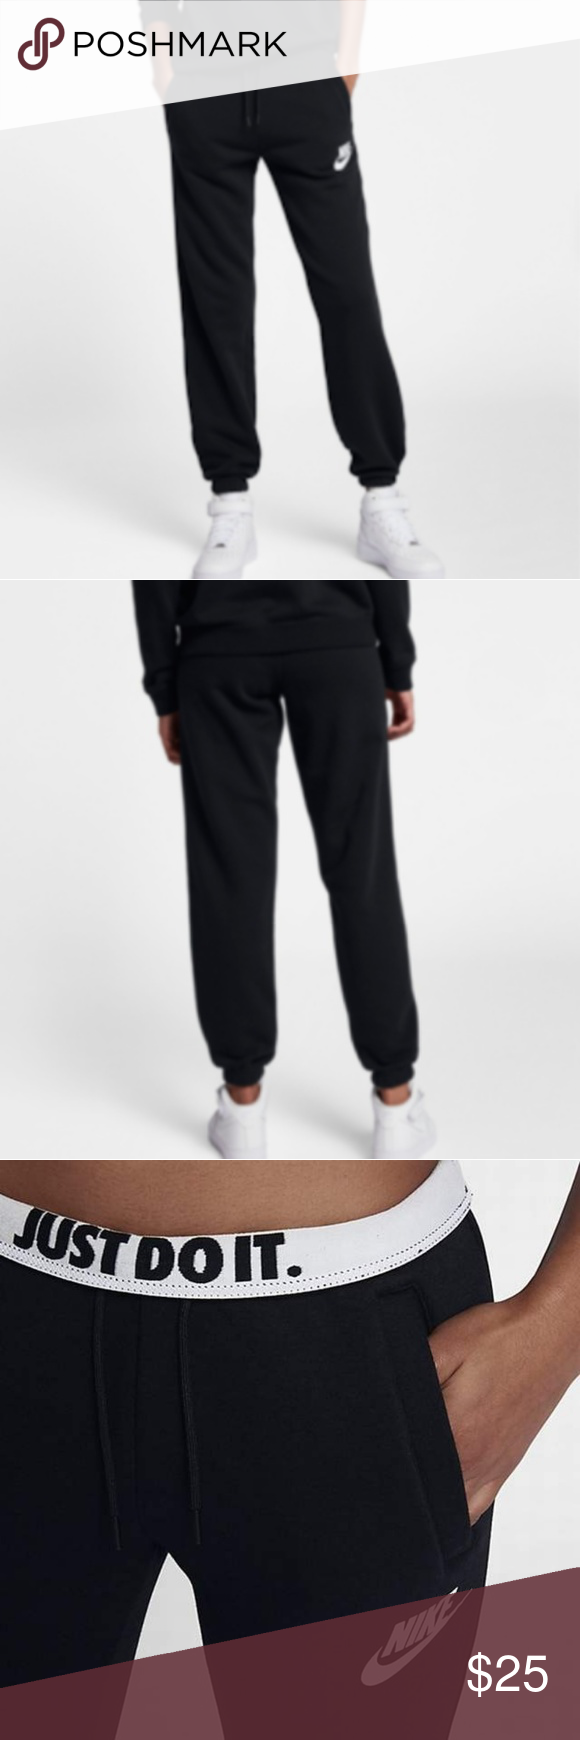 best sneakers 8e0b1 ea3f1 Nike Sportswear Rally Womens Pants Excellent condition. No flaws. Runs big  fits a medium. Color is a little bit faded not noticeable at all.